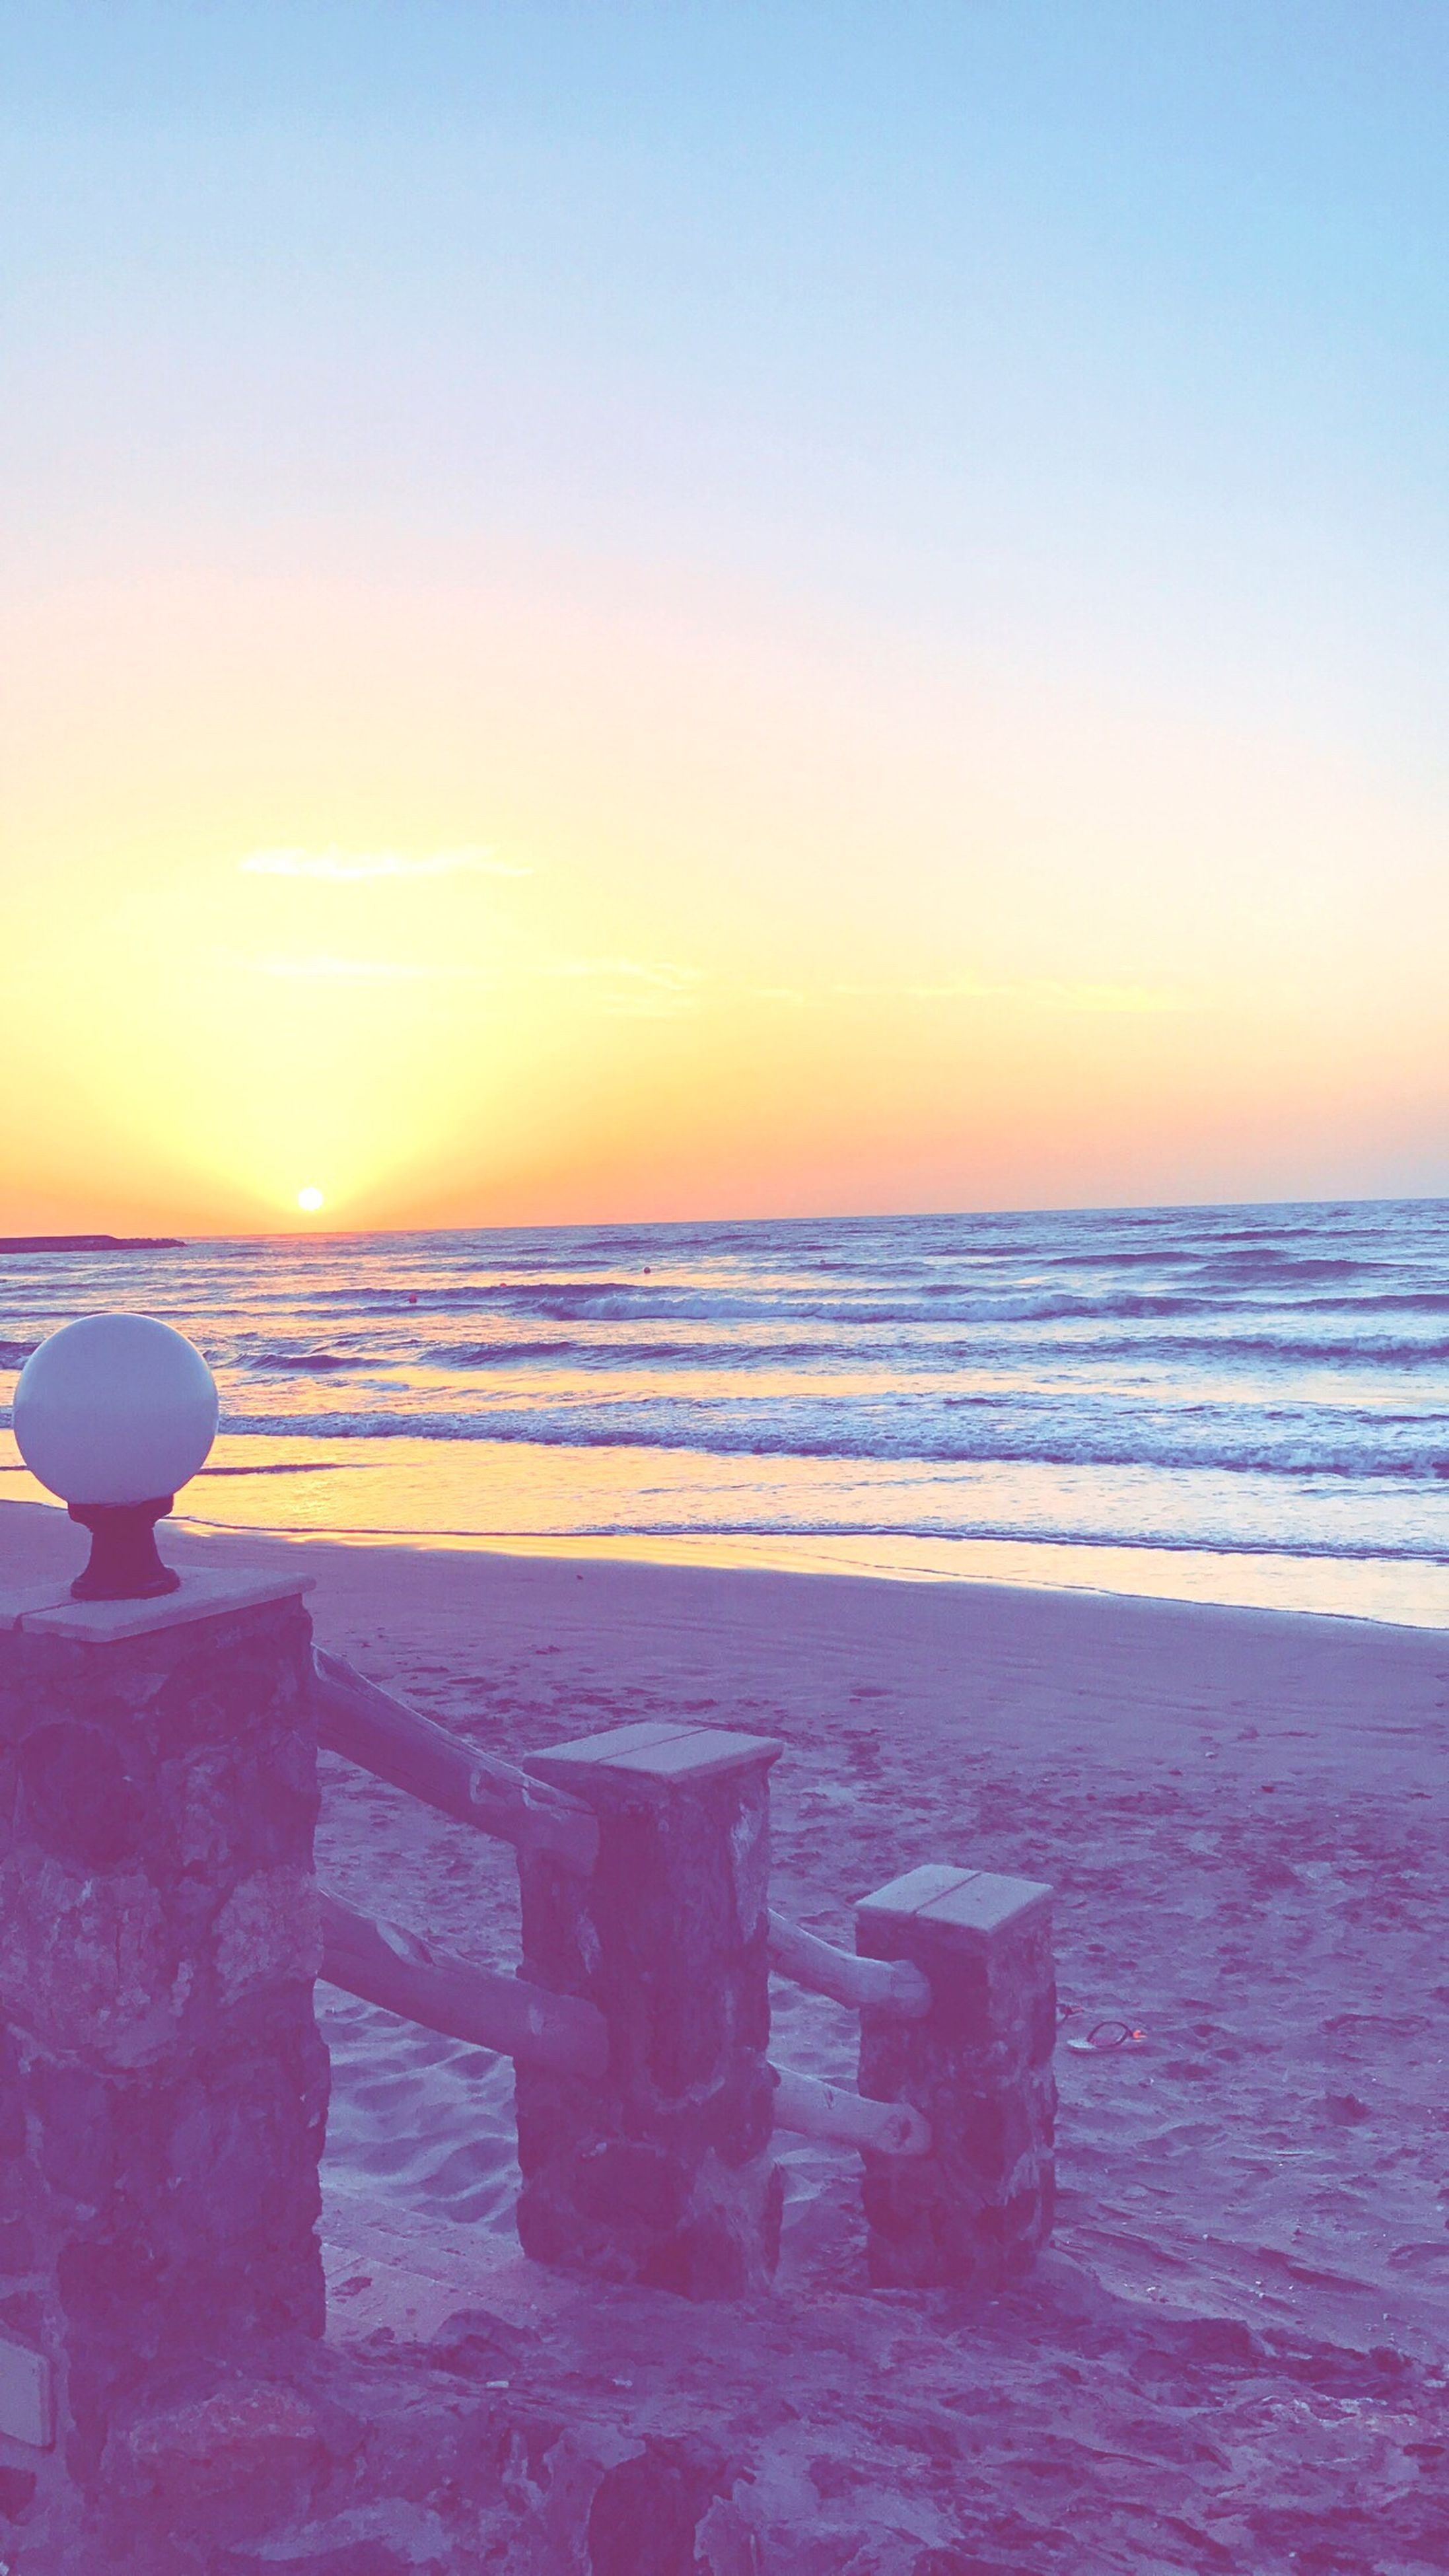 sea, sunset, water, horizon over water, nature, beauty in nature, scenics, sky, no people, beach, outdoors, tranquil scene, tranquility, wave, day, swimming lane marker